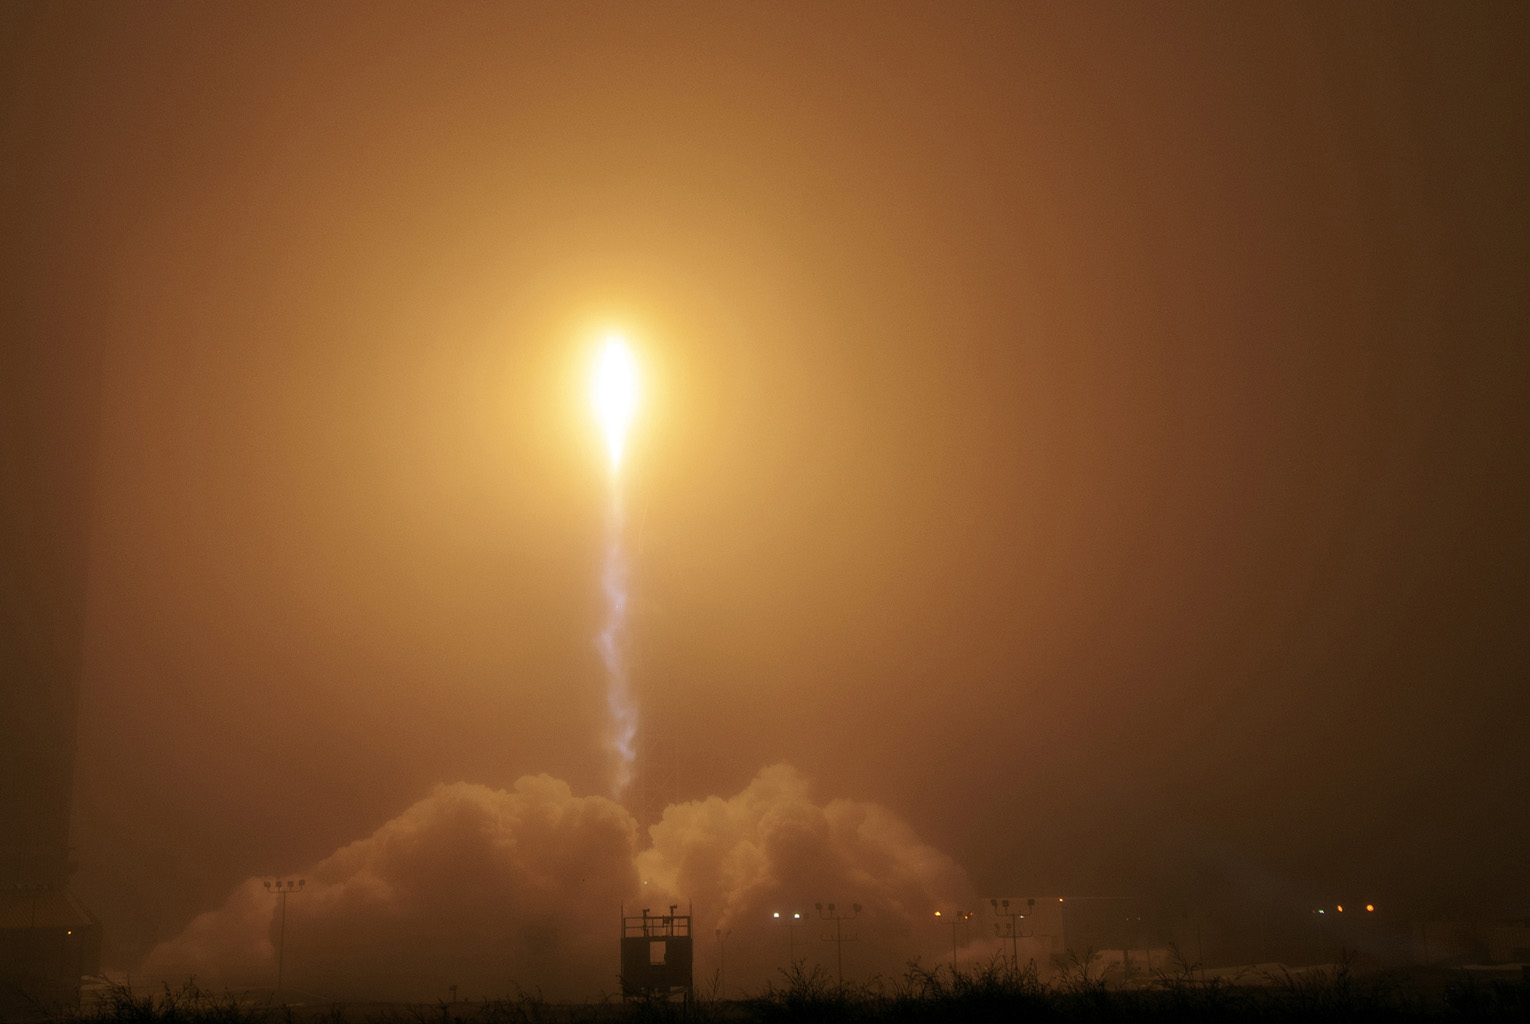 A United Launch Alliance Atlas V rocket lifts off from Space Launch Complex 3 at Vandenberg Air Force Base, Ca., carrying NASA's InSight Mars lander. Liftoff was on May 5, 2018 at 4:05 a.m. PDT.